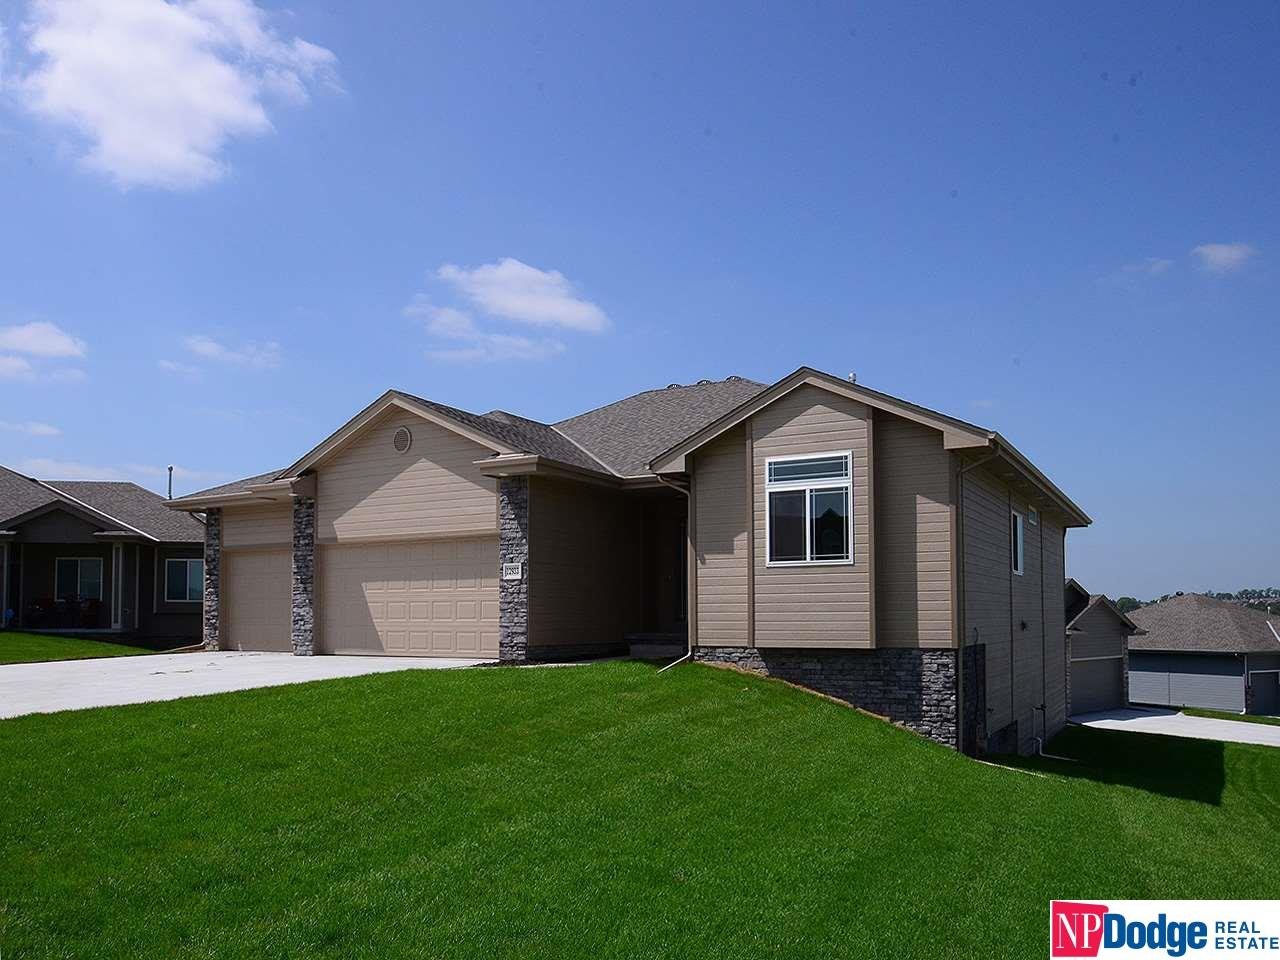 Photo for 12933 Eagle Circle, Omaha, NE 68142-5189 (MLS # 21819886)